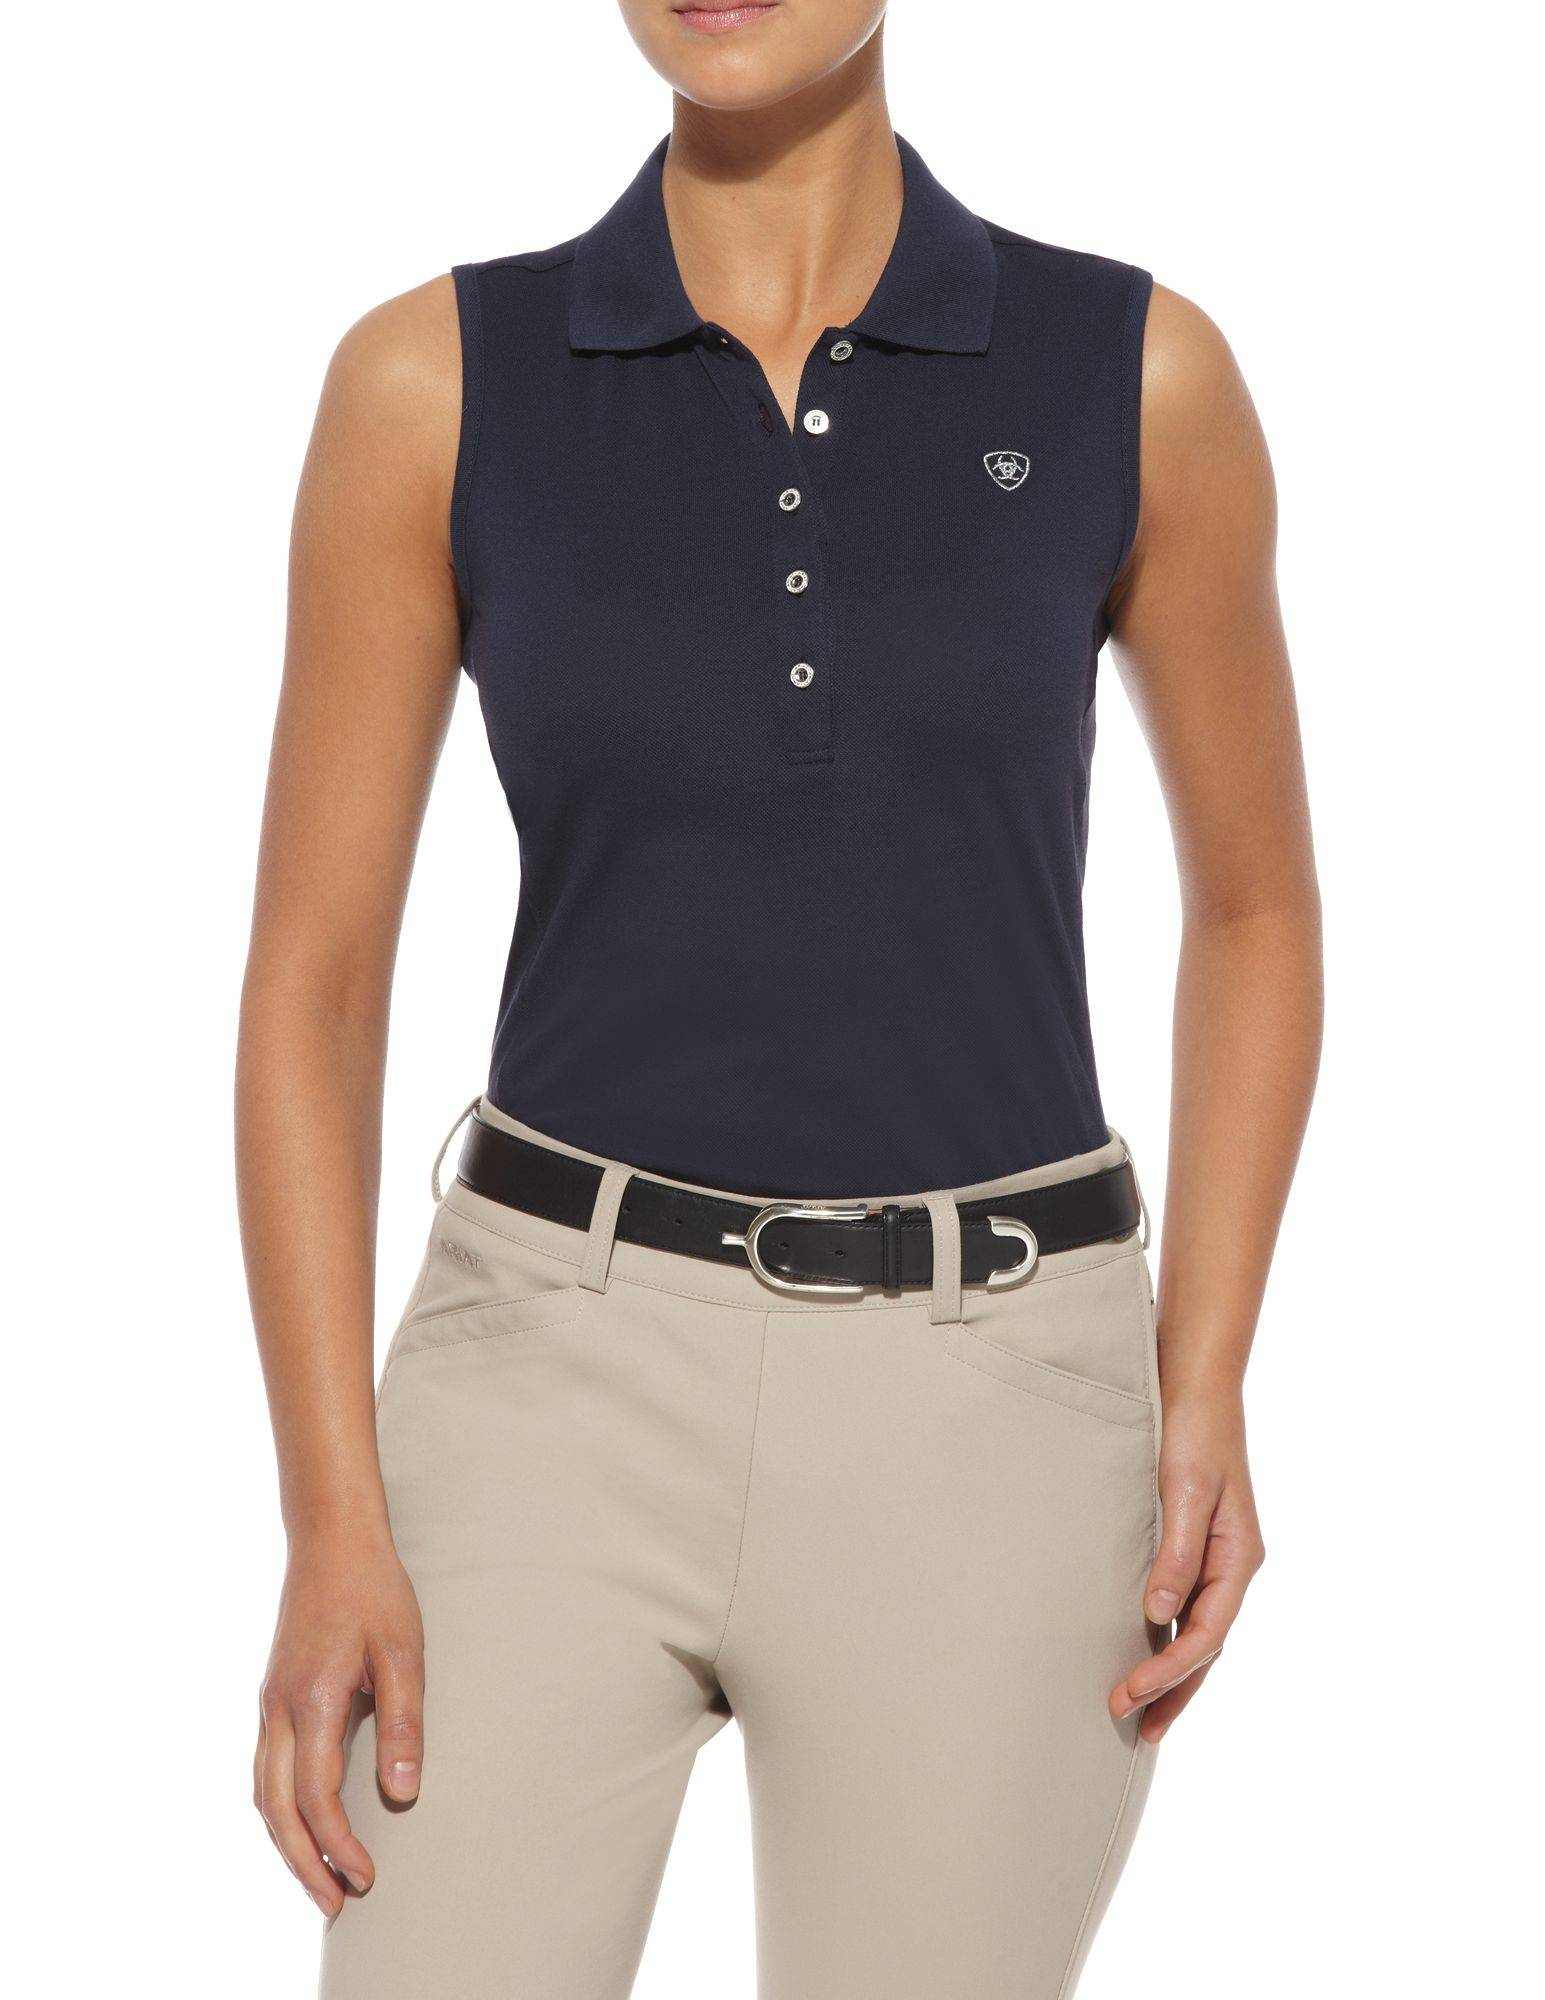 Ariat Prix Sleeveless Polo - Ladies, Navy